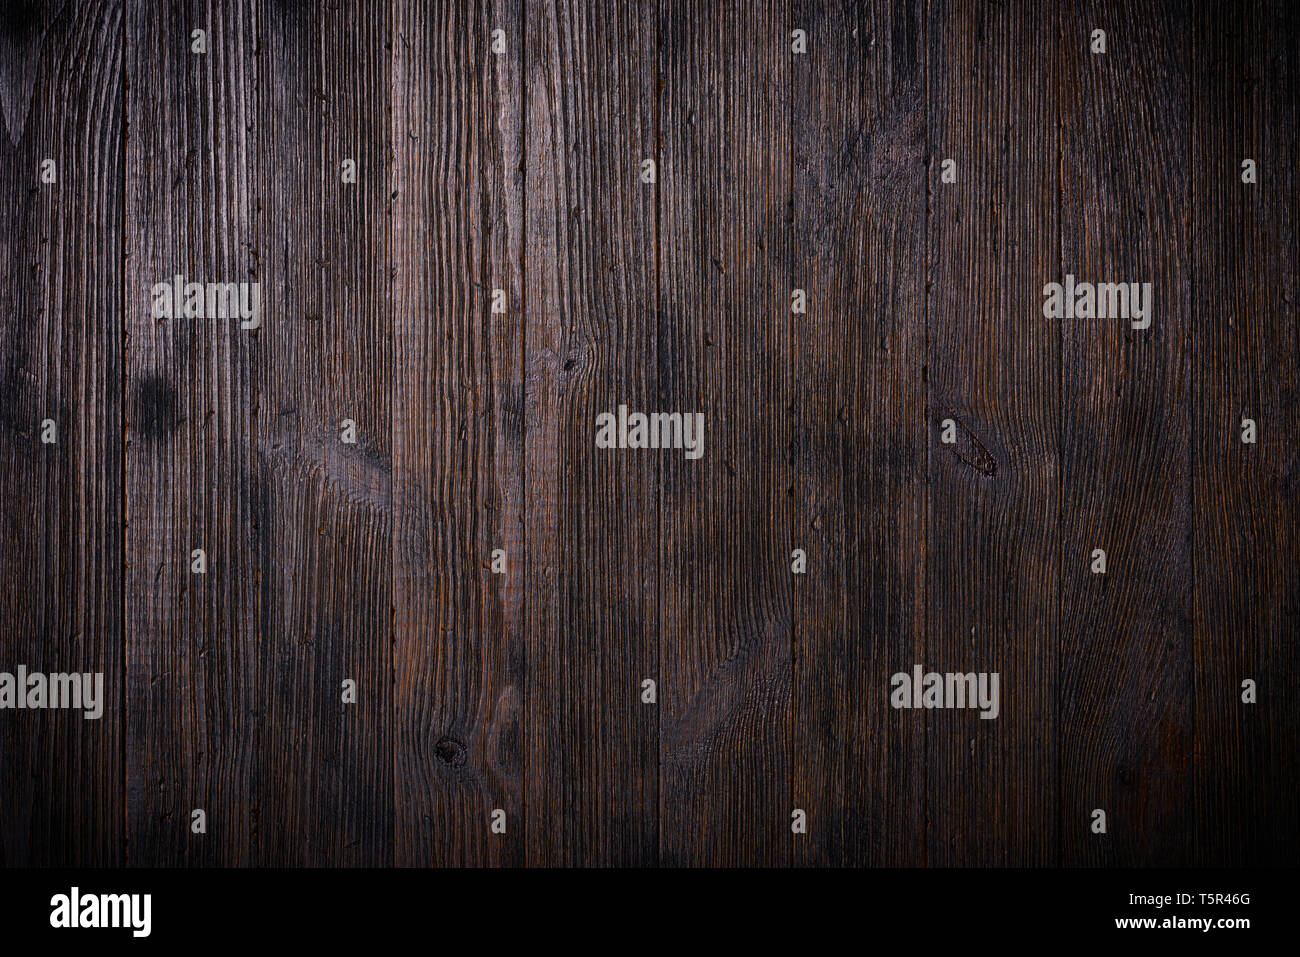 Dark vintage wooden table texture background top view - Stock Image